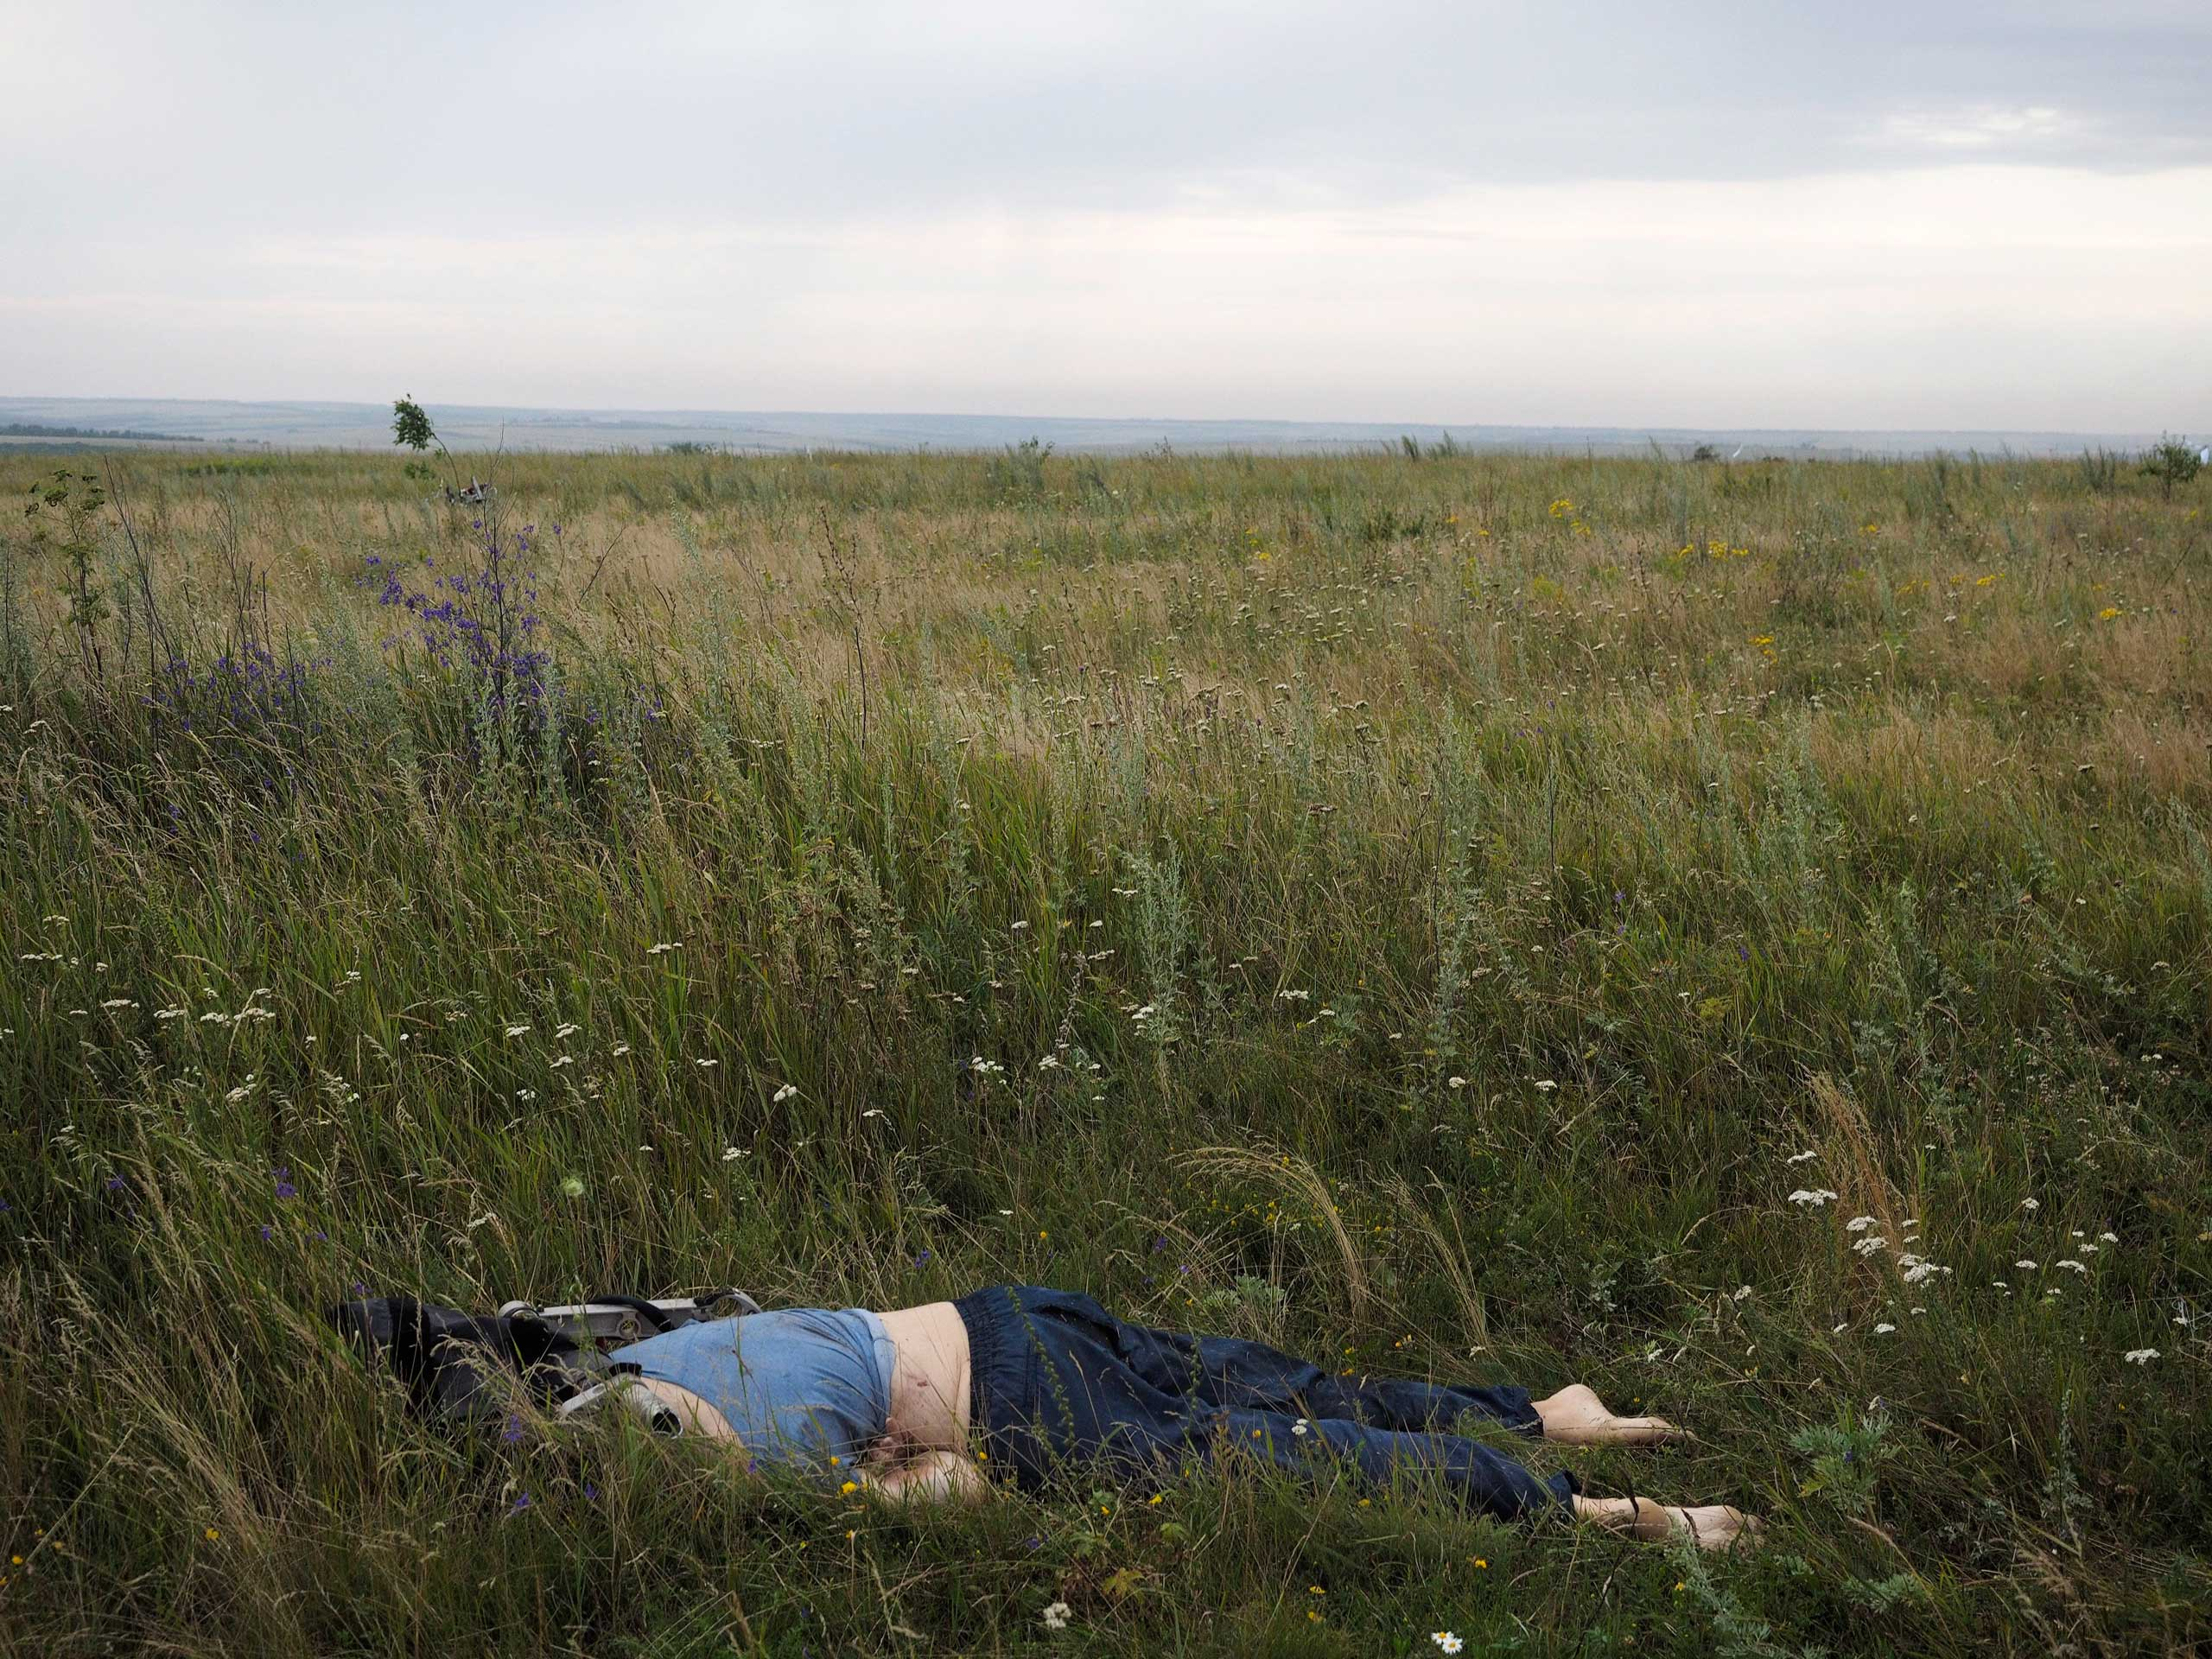 The corpse of a passenger aboard the Malaysia Airlines flight that was shot down over Ukraine, Torez, Ukraine, July 17, 2014.